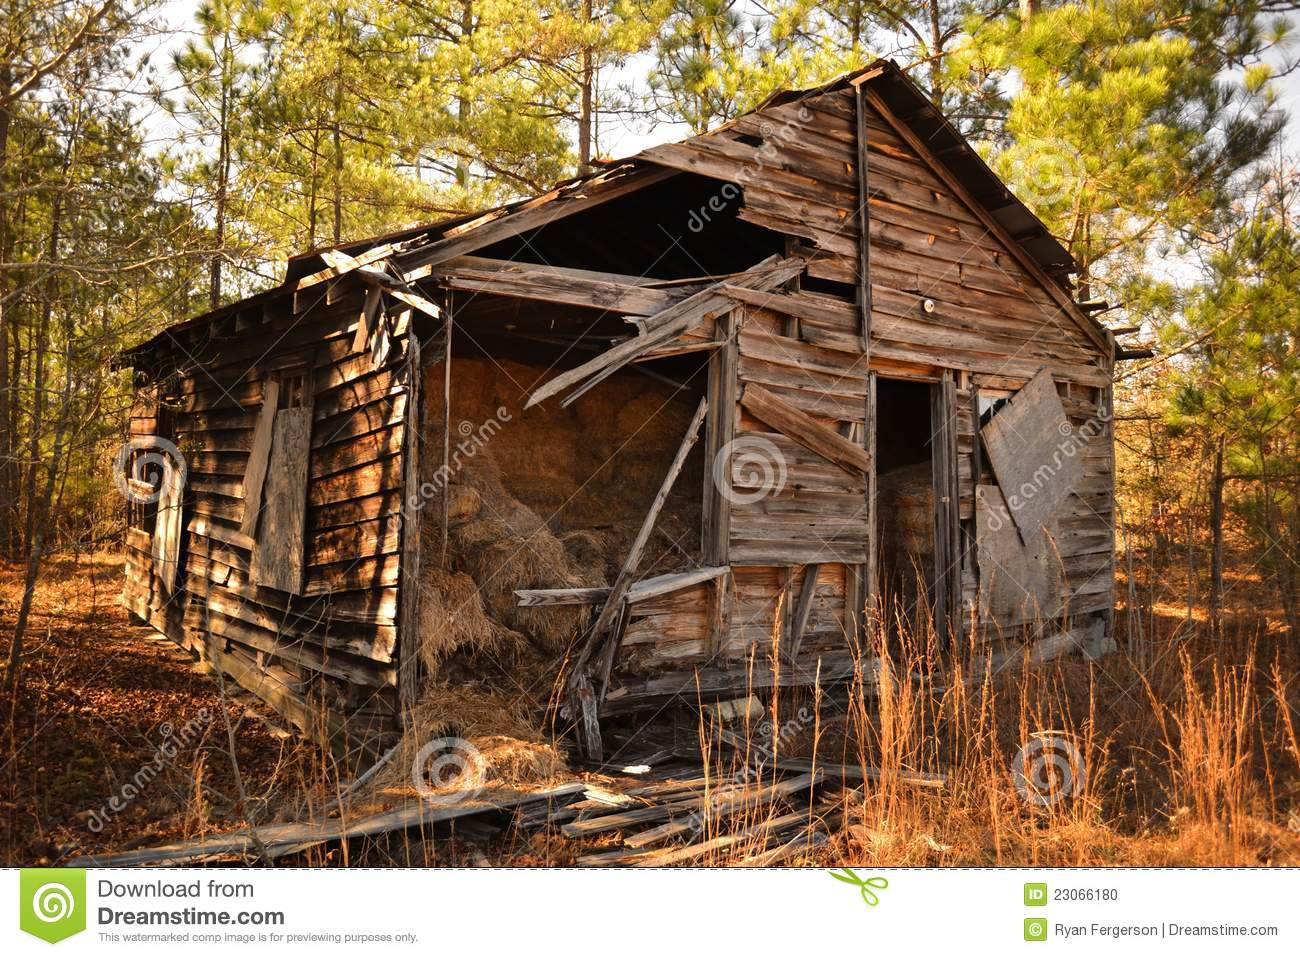 Old Cabin In The Woods Stock Photo - Image: 23066180